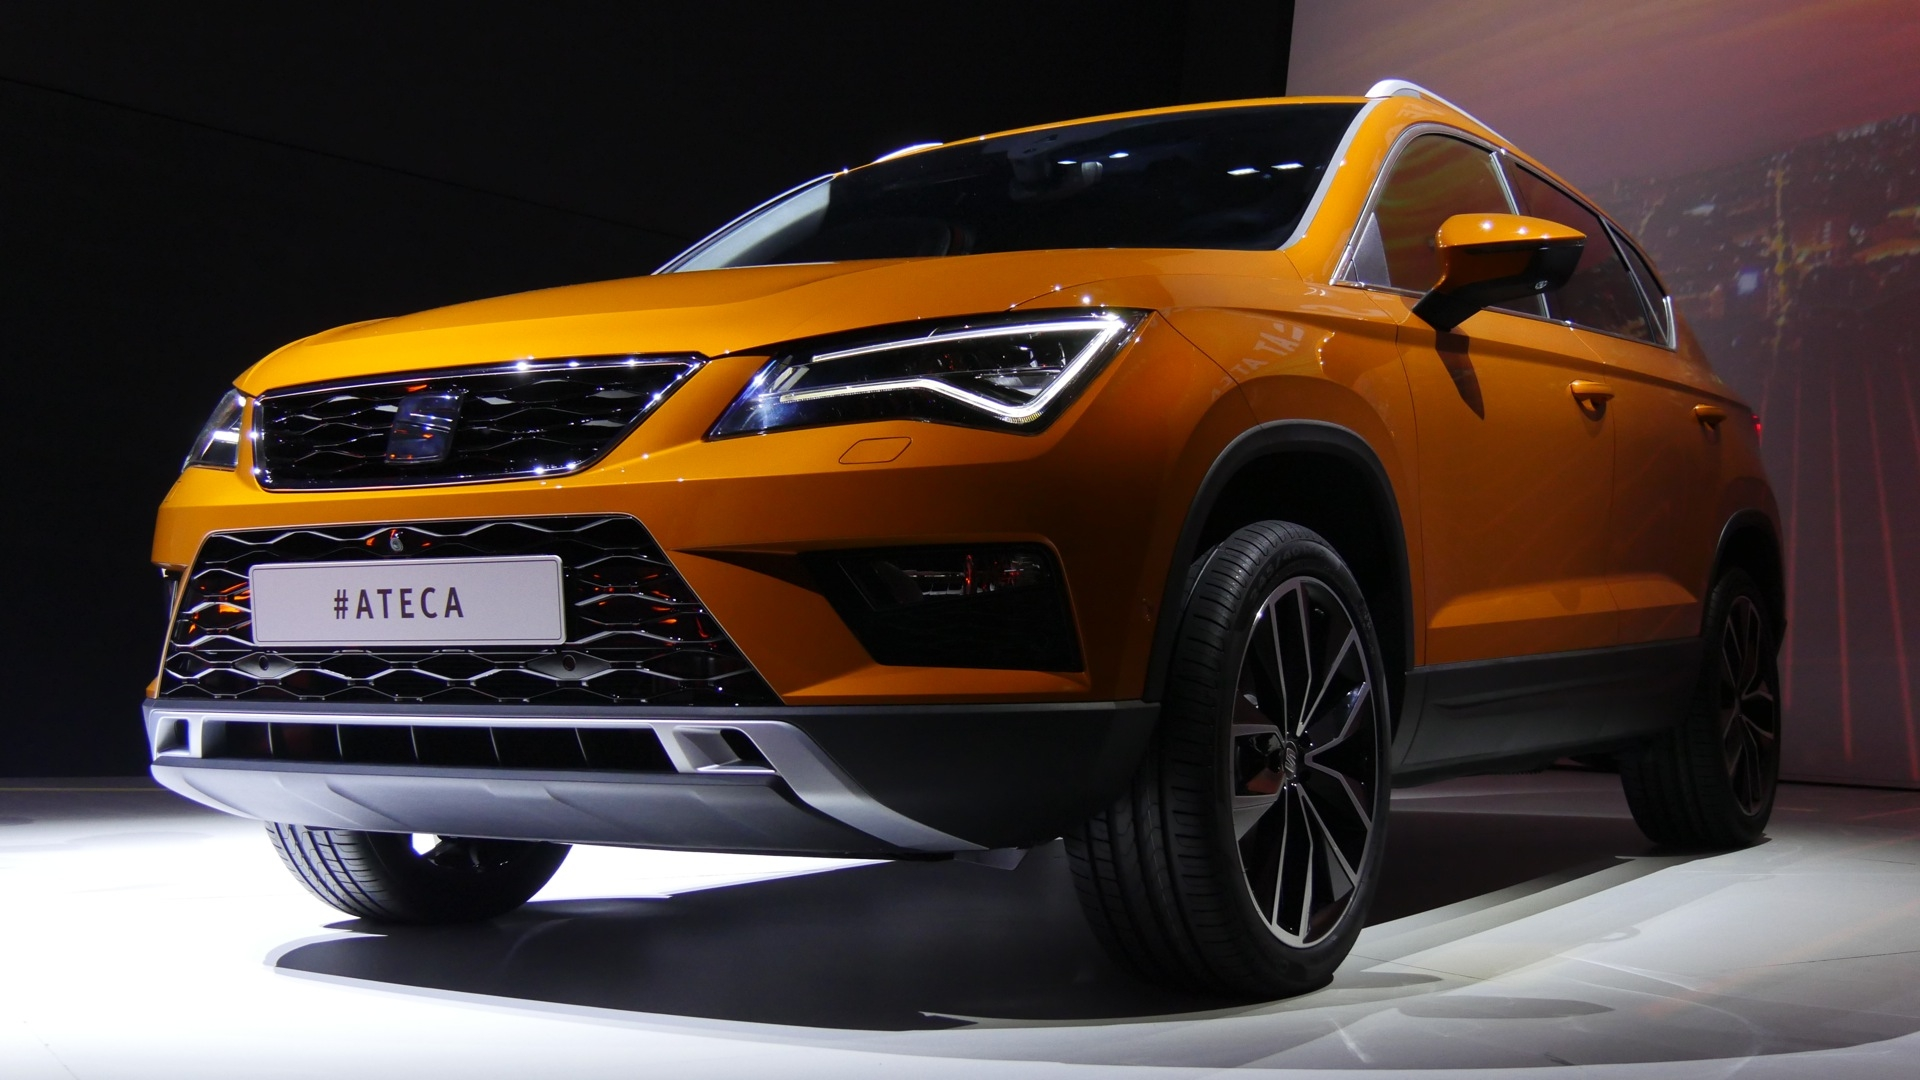 seat ateca cupra prix cupra ateca 2018 photos officielles du suv seat de 300 ch seat ateca. Black Bedroom Furniture Sets. Home Design Ideas